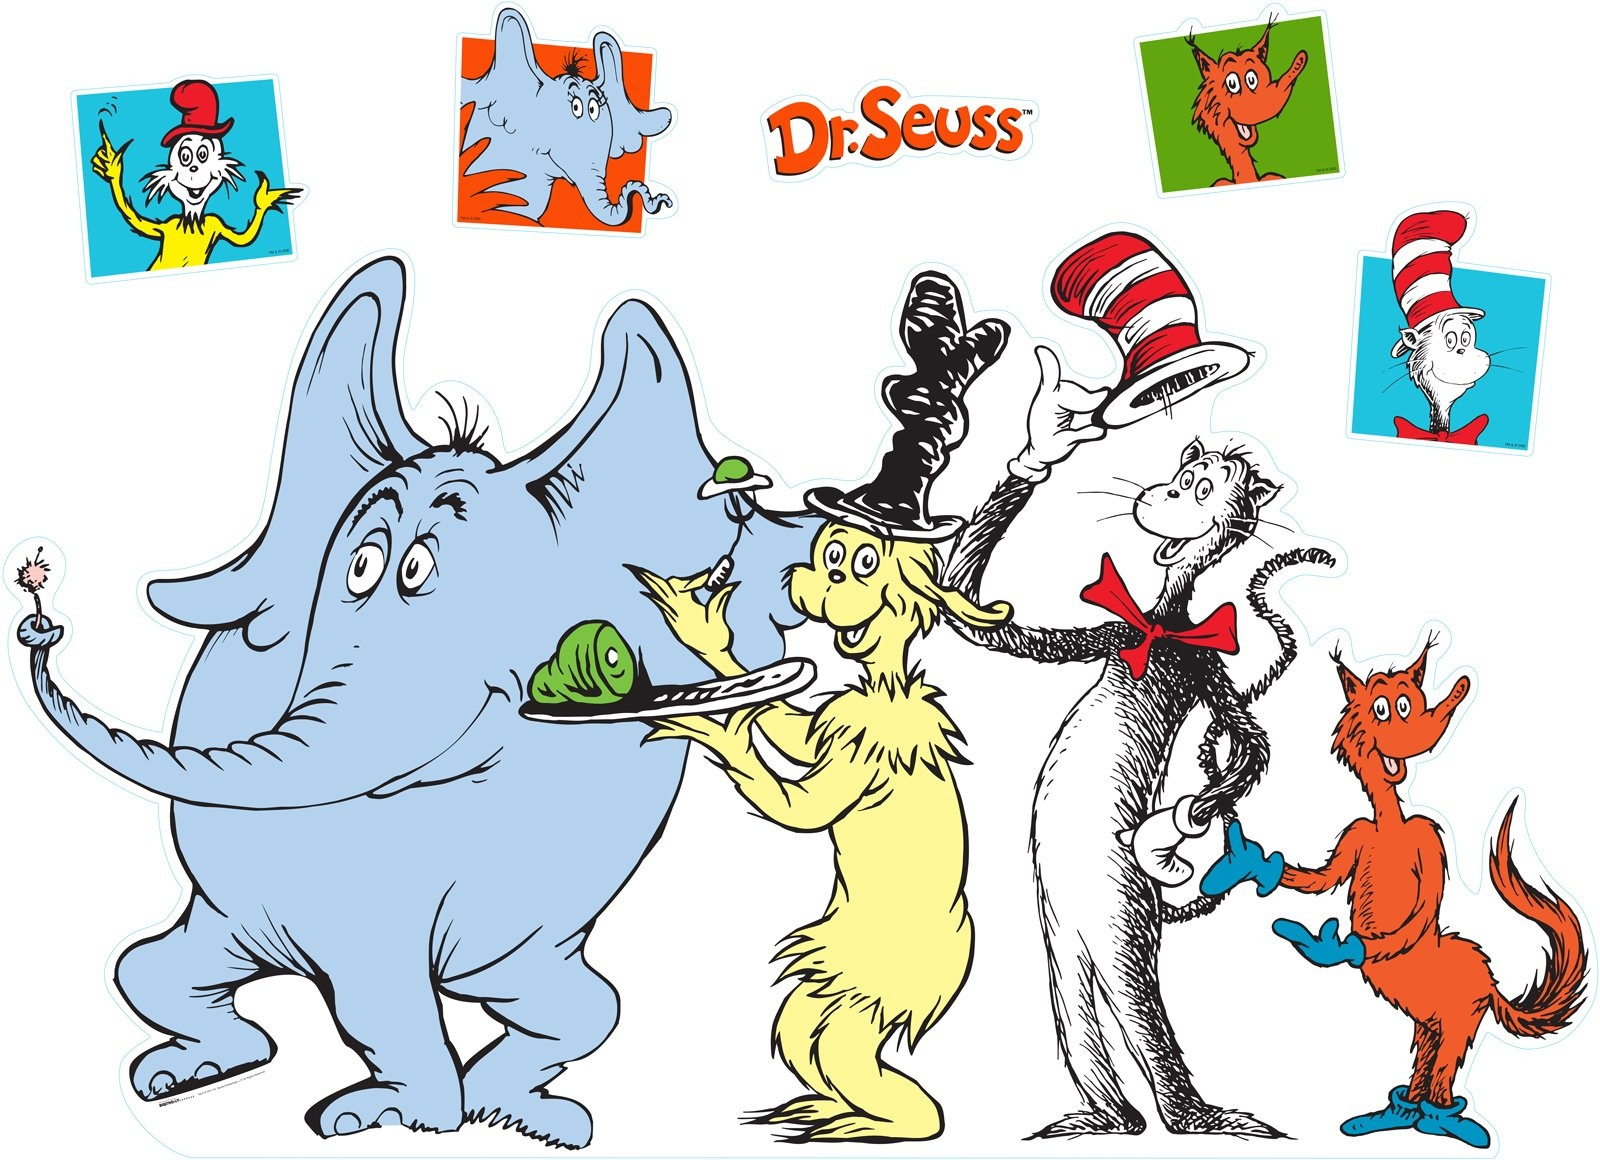 Images Of Dr Seuss Characters   Free Download Best Images Of Dr - Free Printable Dr Seuss Characters